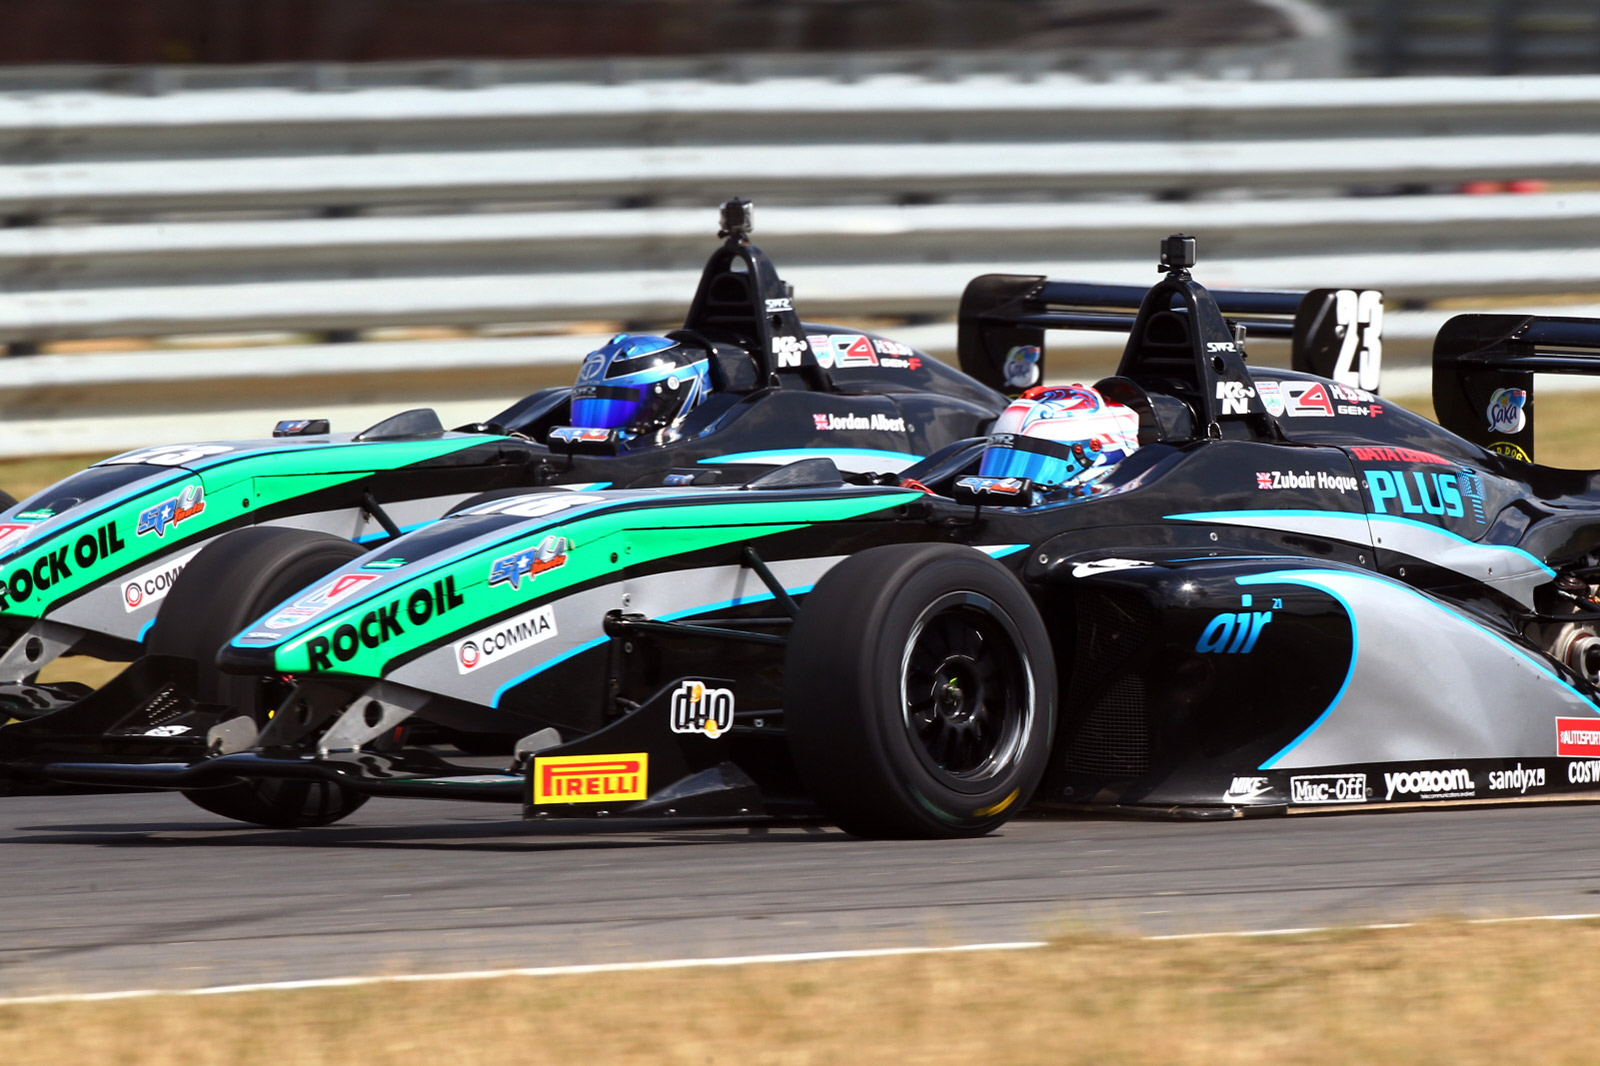 Jordan Albert and Zubair Hoque on track at Snetterton